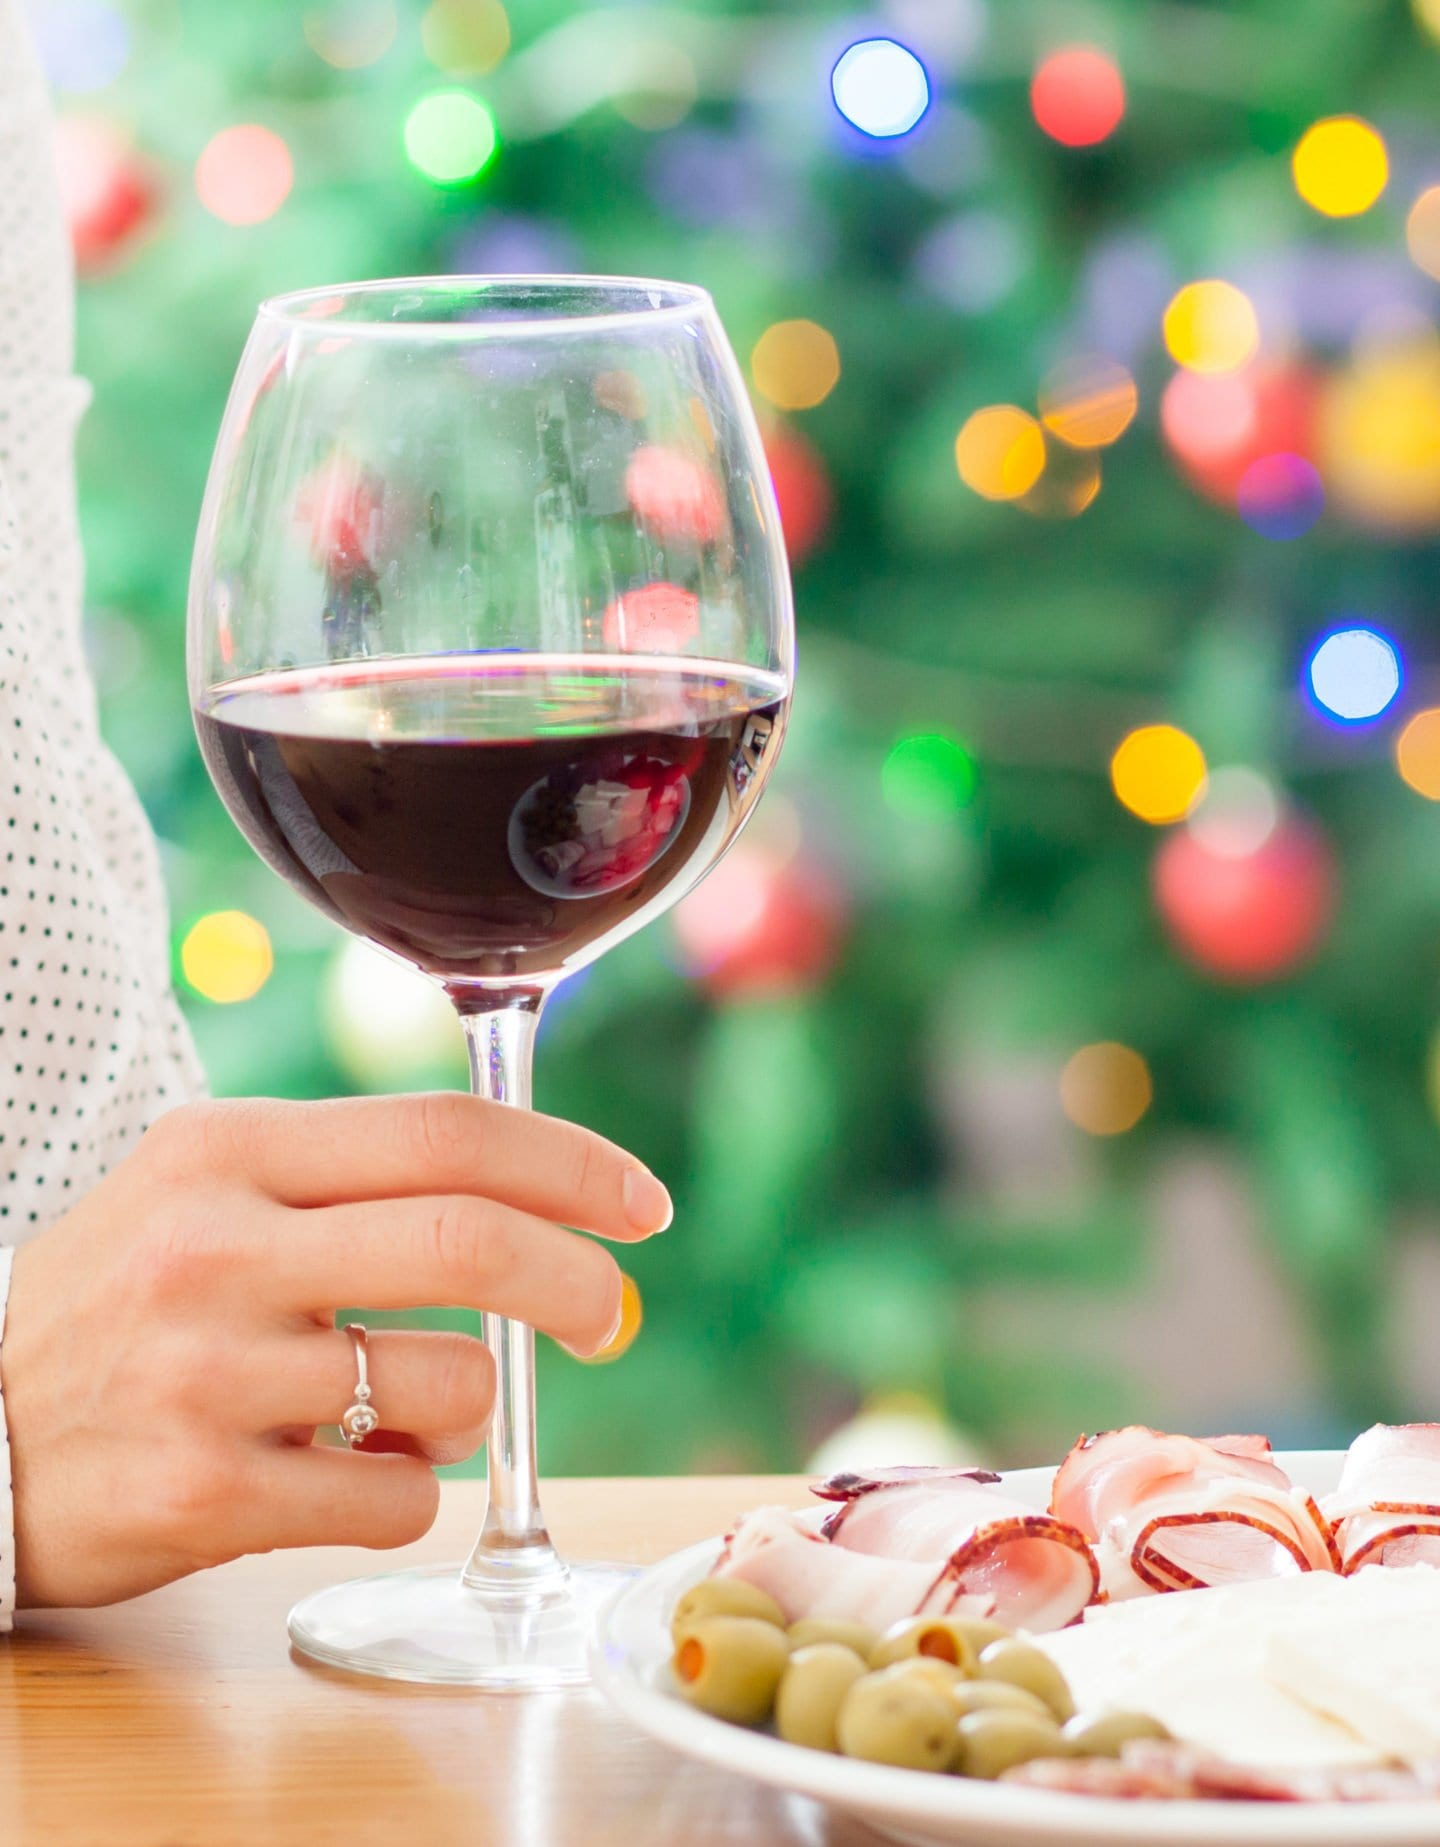 Best Gifts for a Wine Lover